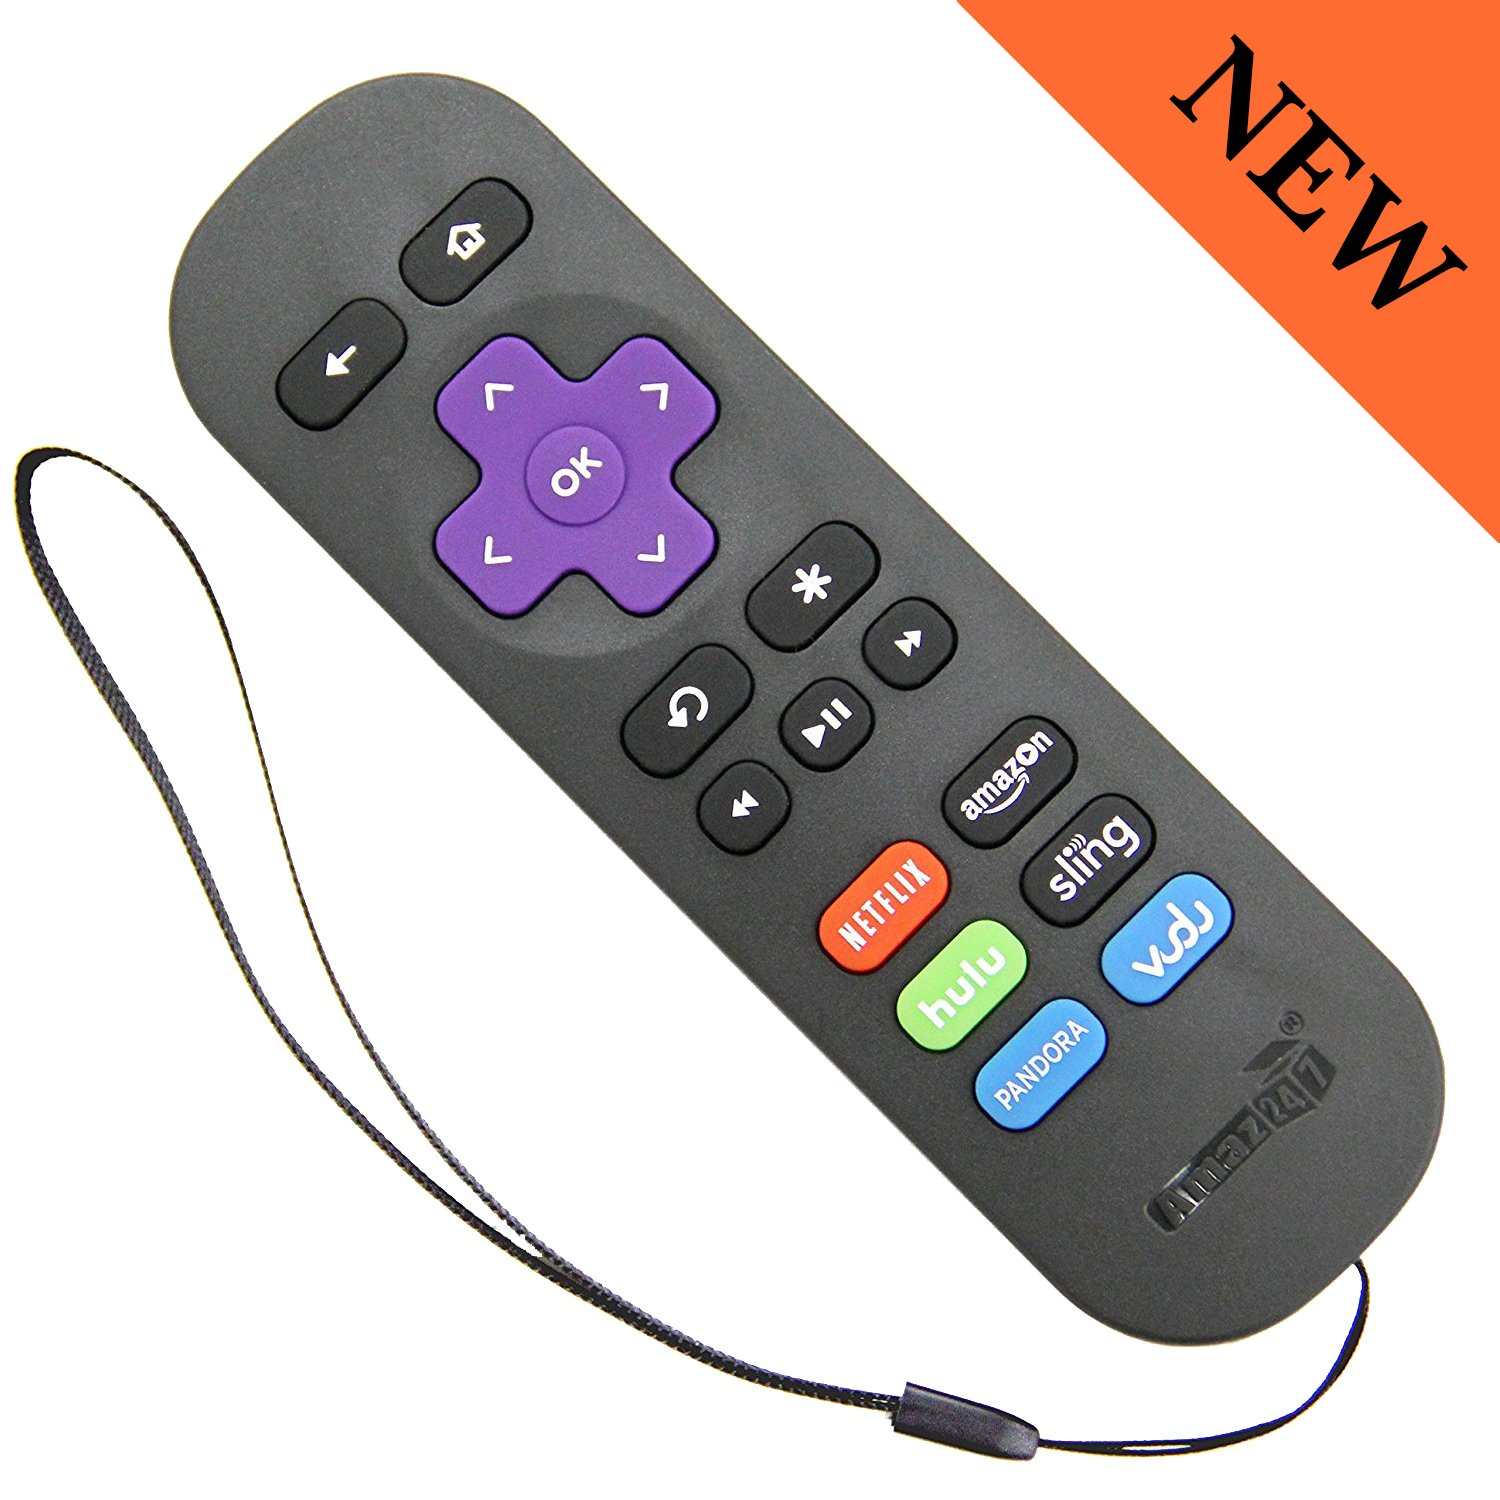 Amazon Amaz247 Arcbzb Replacement Remote For Roku 4321 Hd